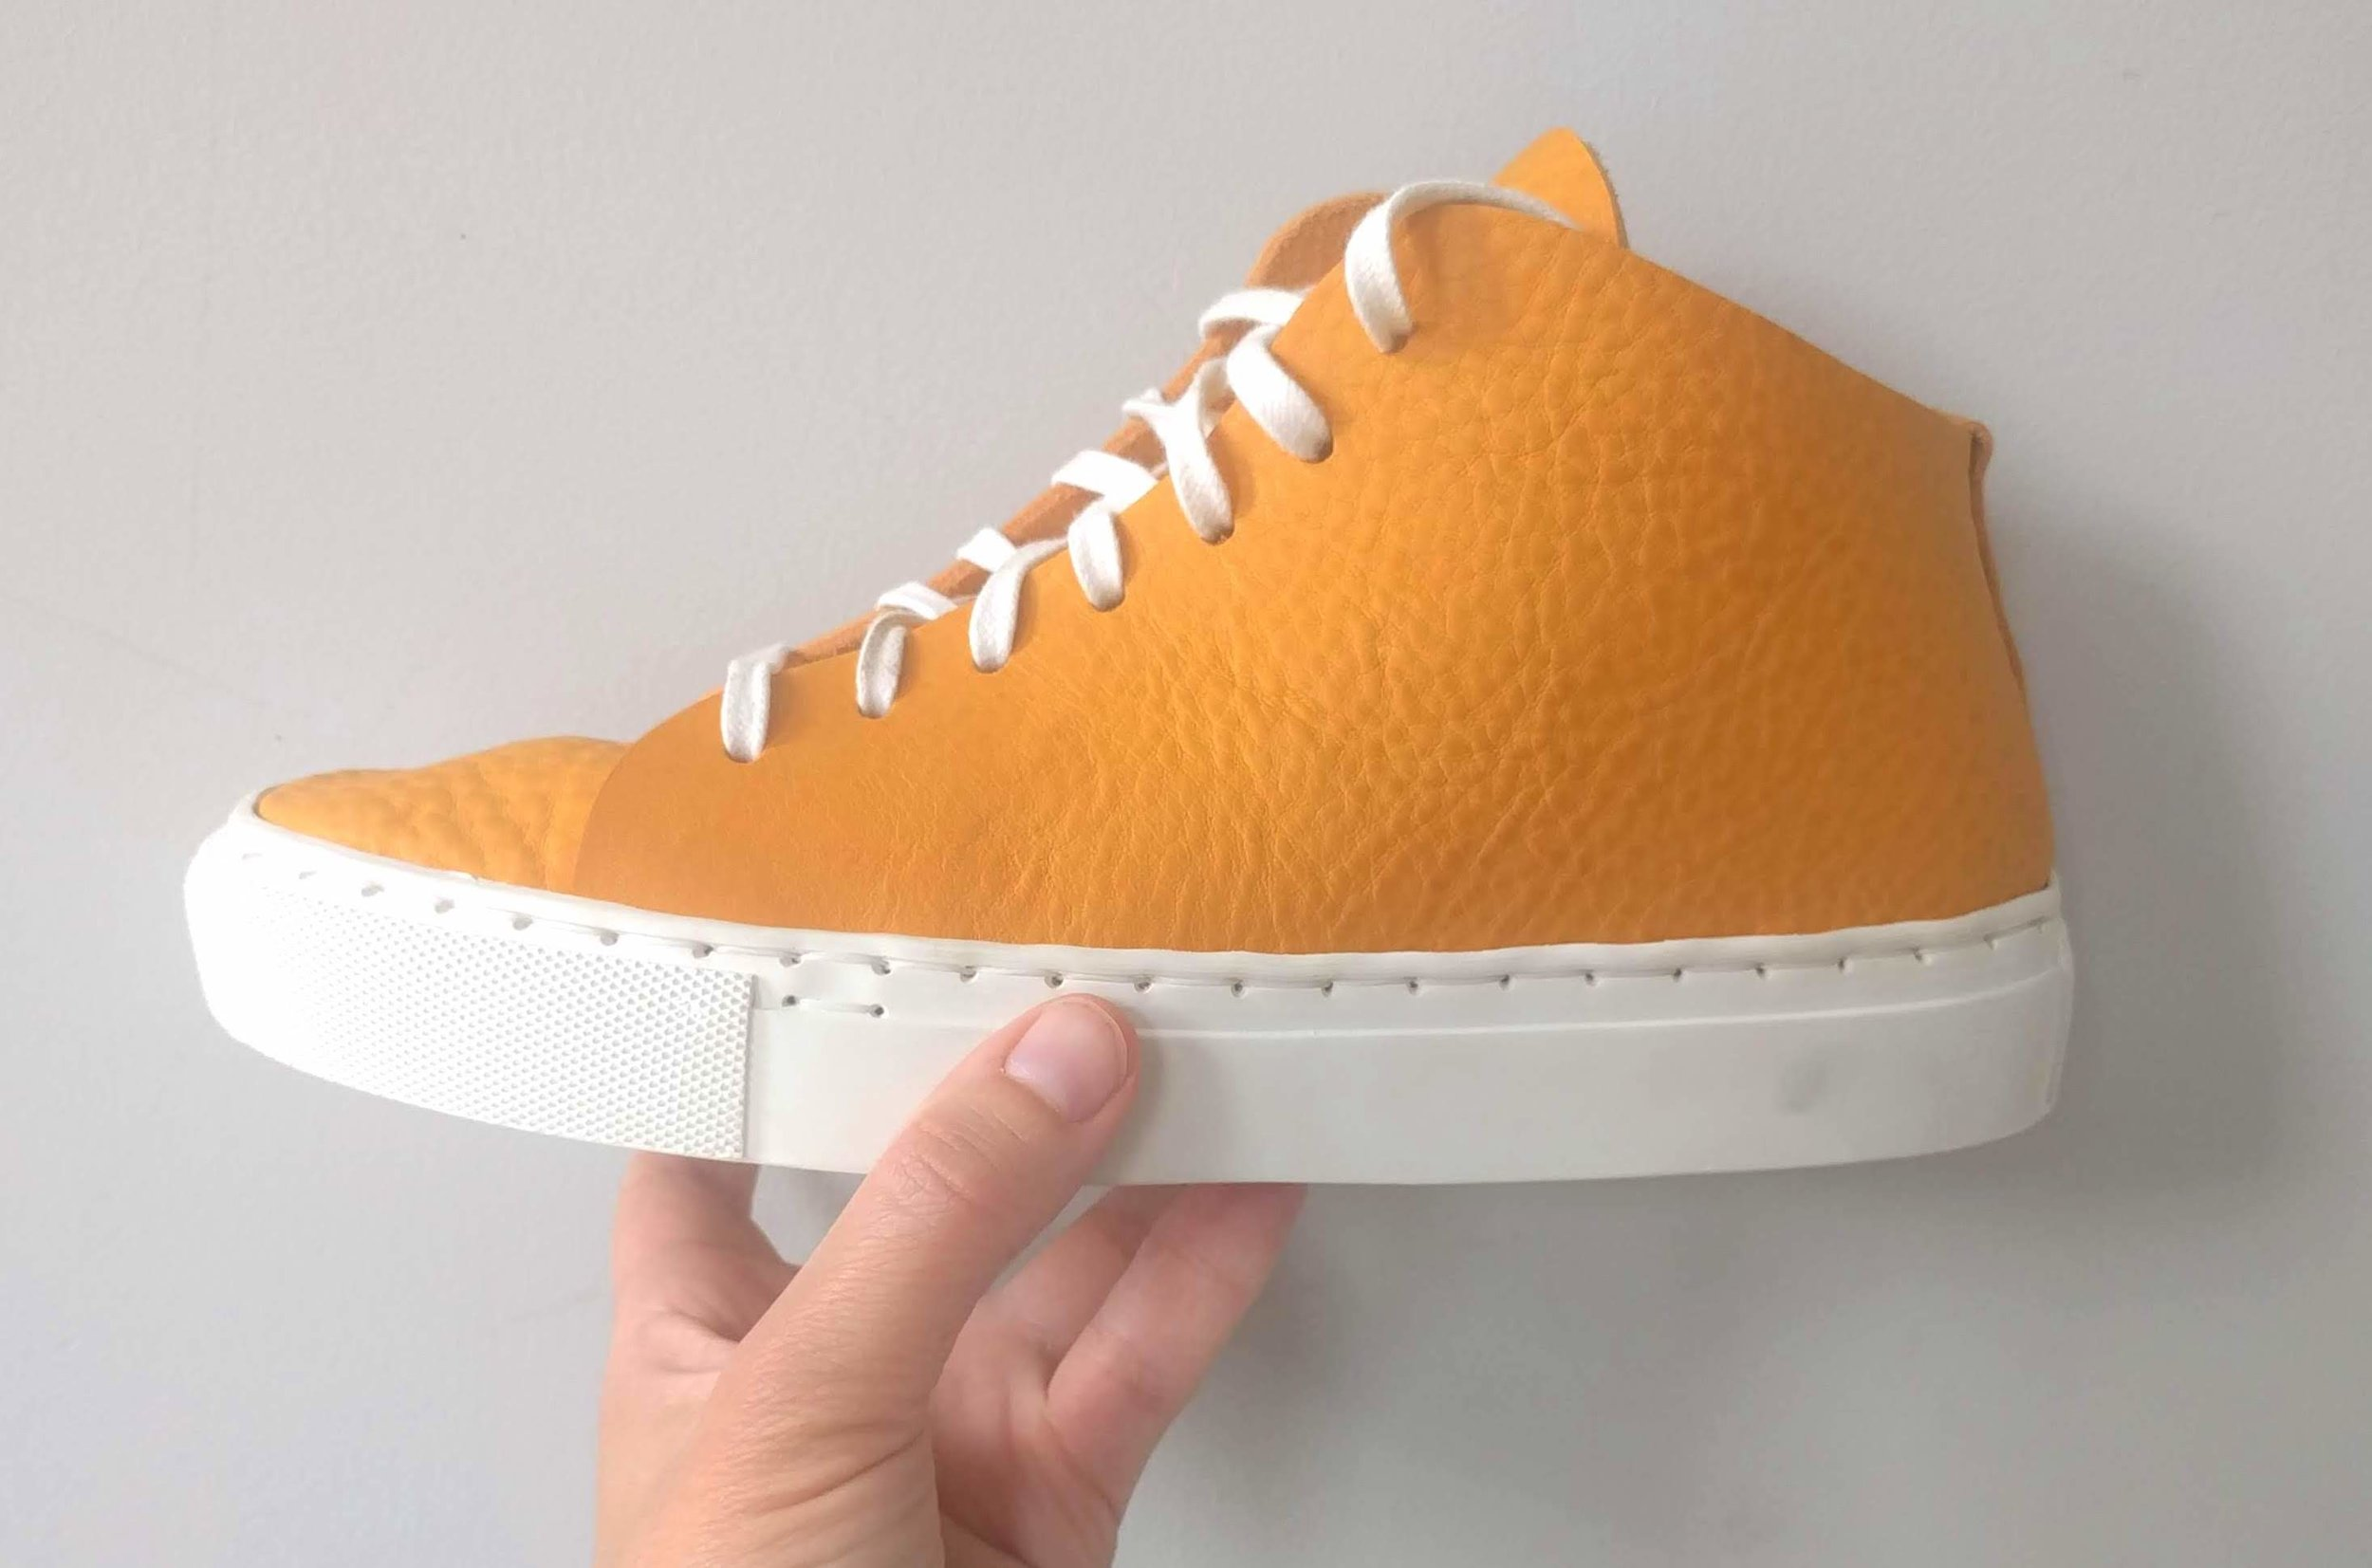 Make your own leather sneakers - 6 hours£145 includes all materials